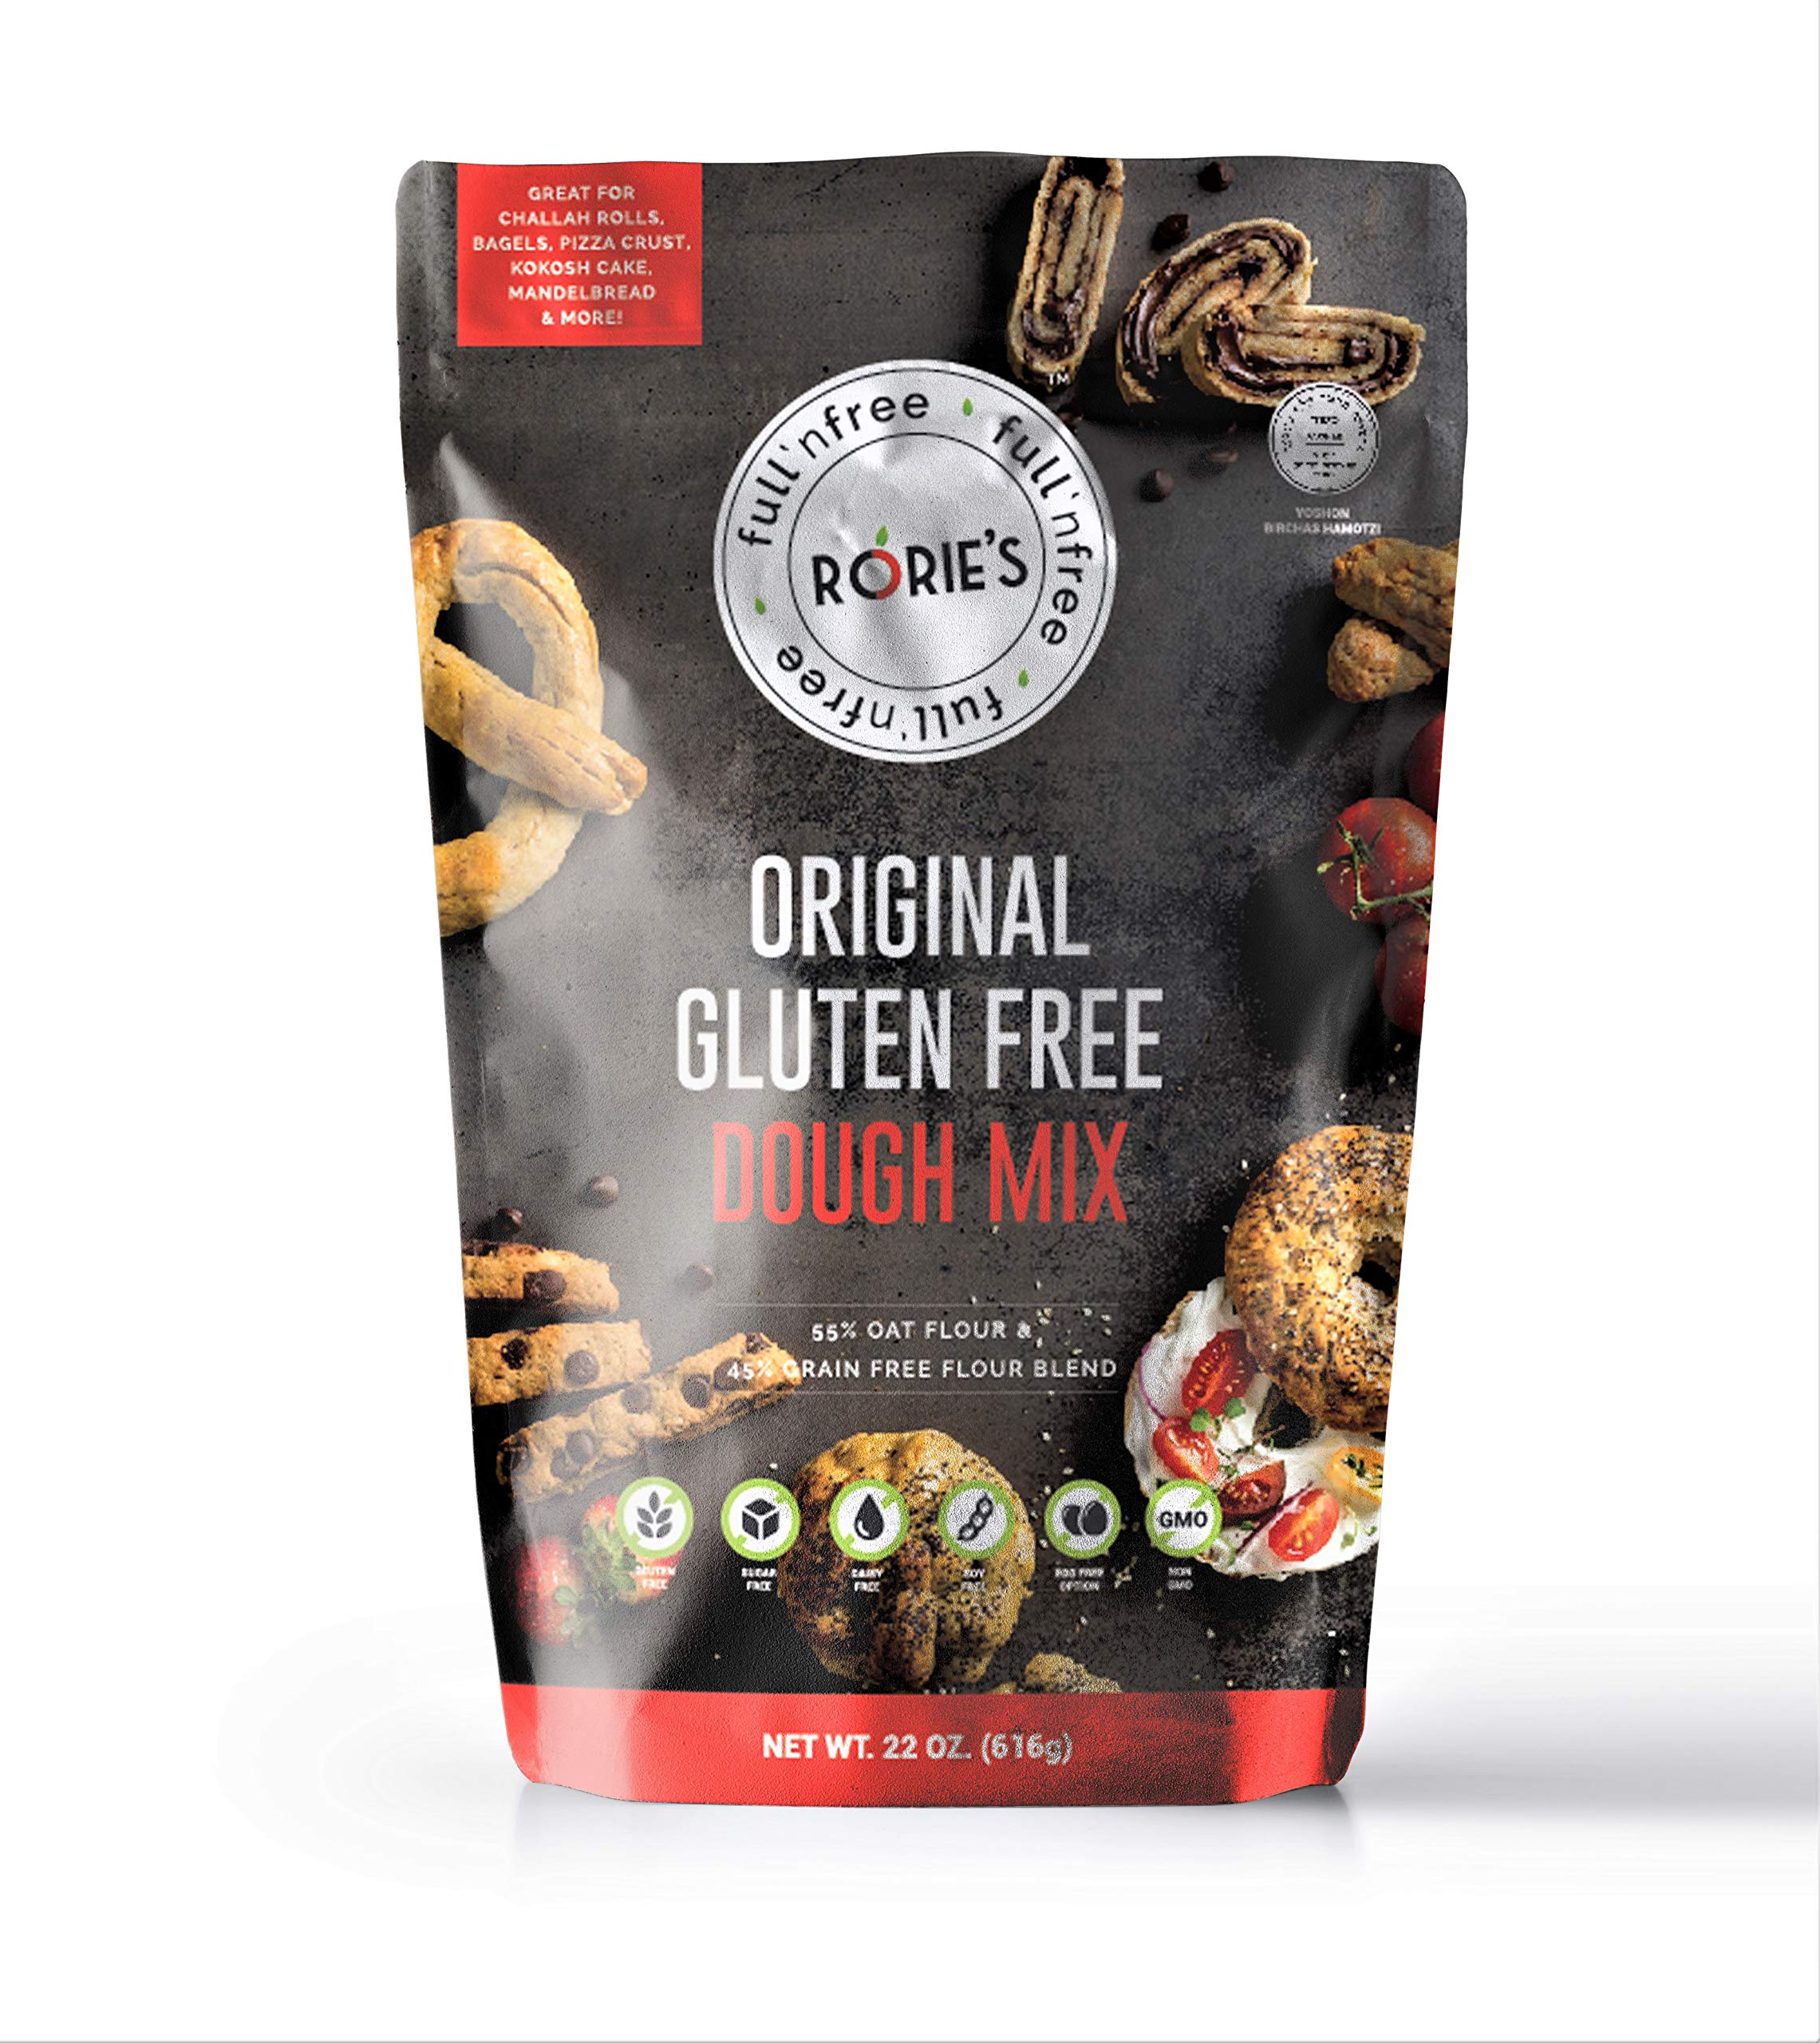 Rories Gluten Free Oat Dough Mix 22 oz (Pack of 3) Living Full 'N free by Rorie's